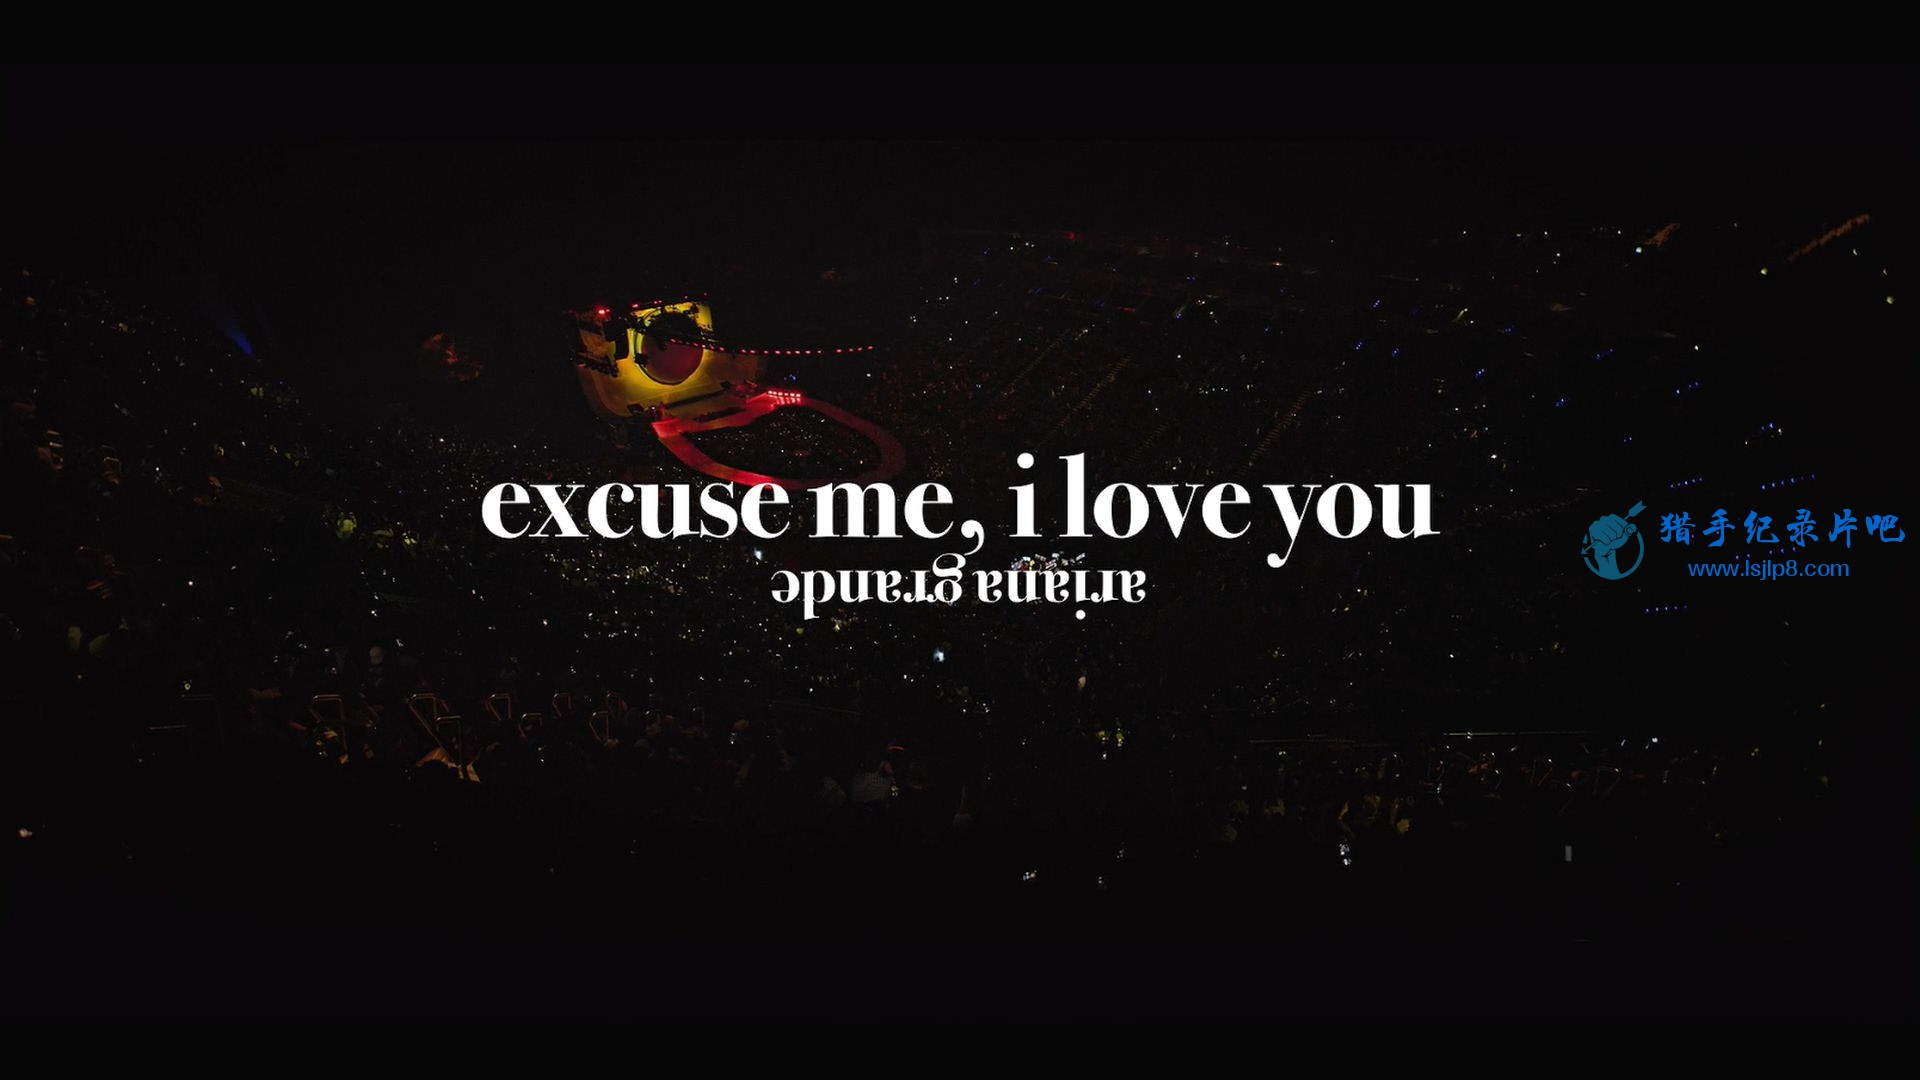 ariana.grande.excuse.me.i.love.you.1080p.web.h264-naisu.jpg